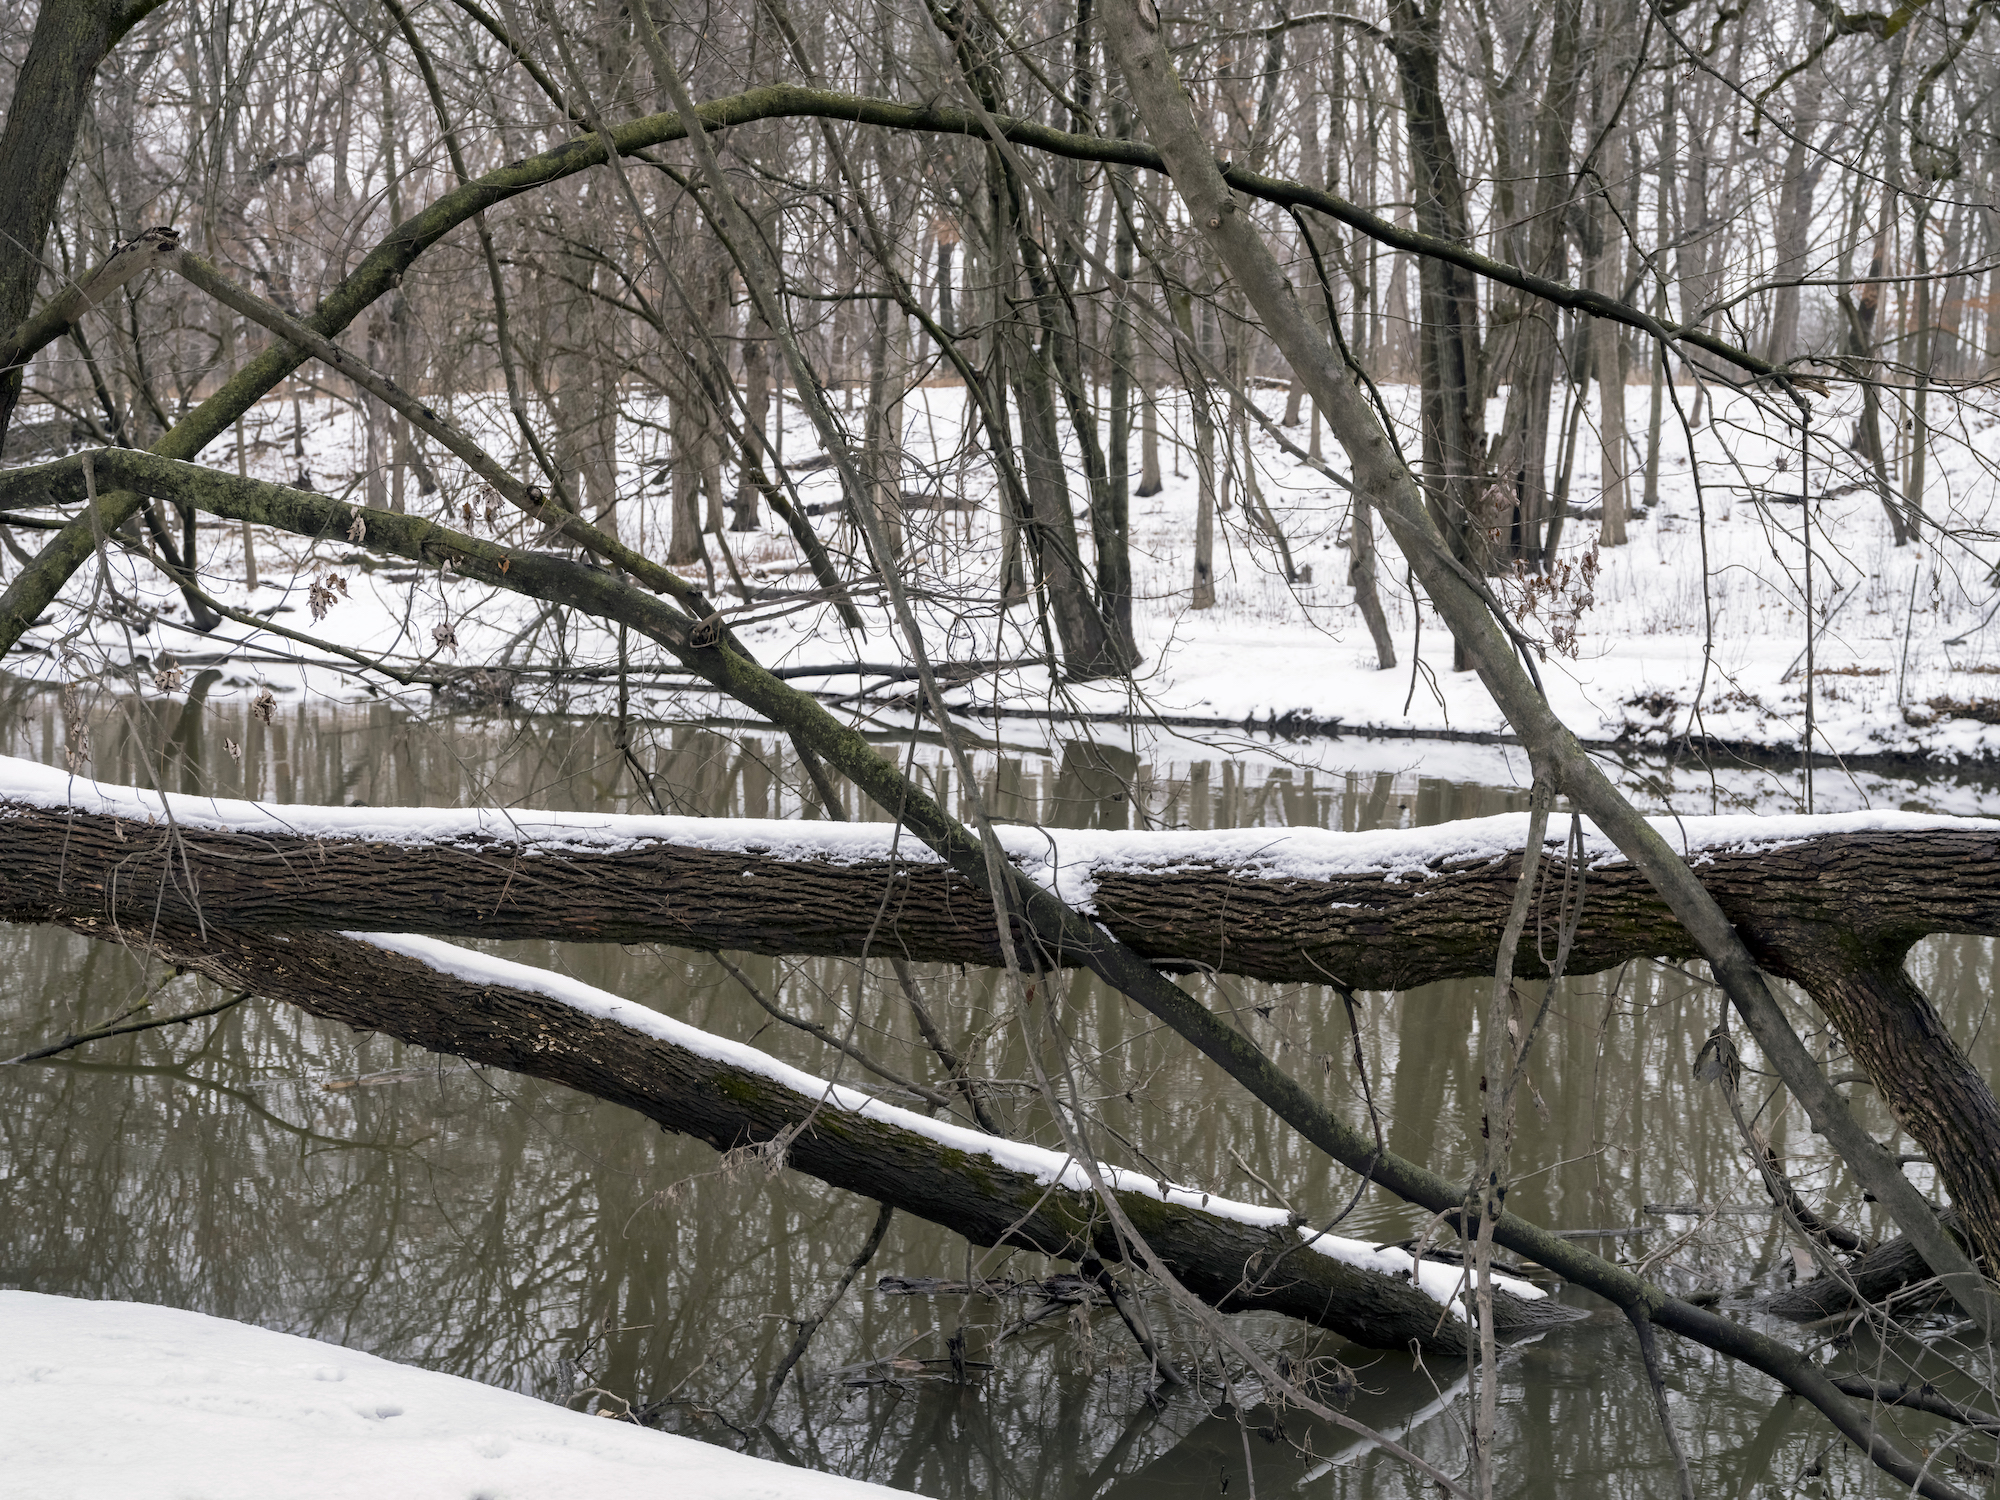 trees have fallen into a river in the woods that are covered in a light blanket of snow, the colors are browns and muted